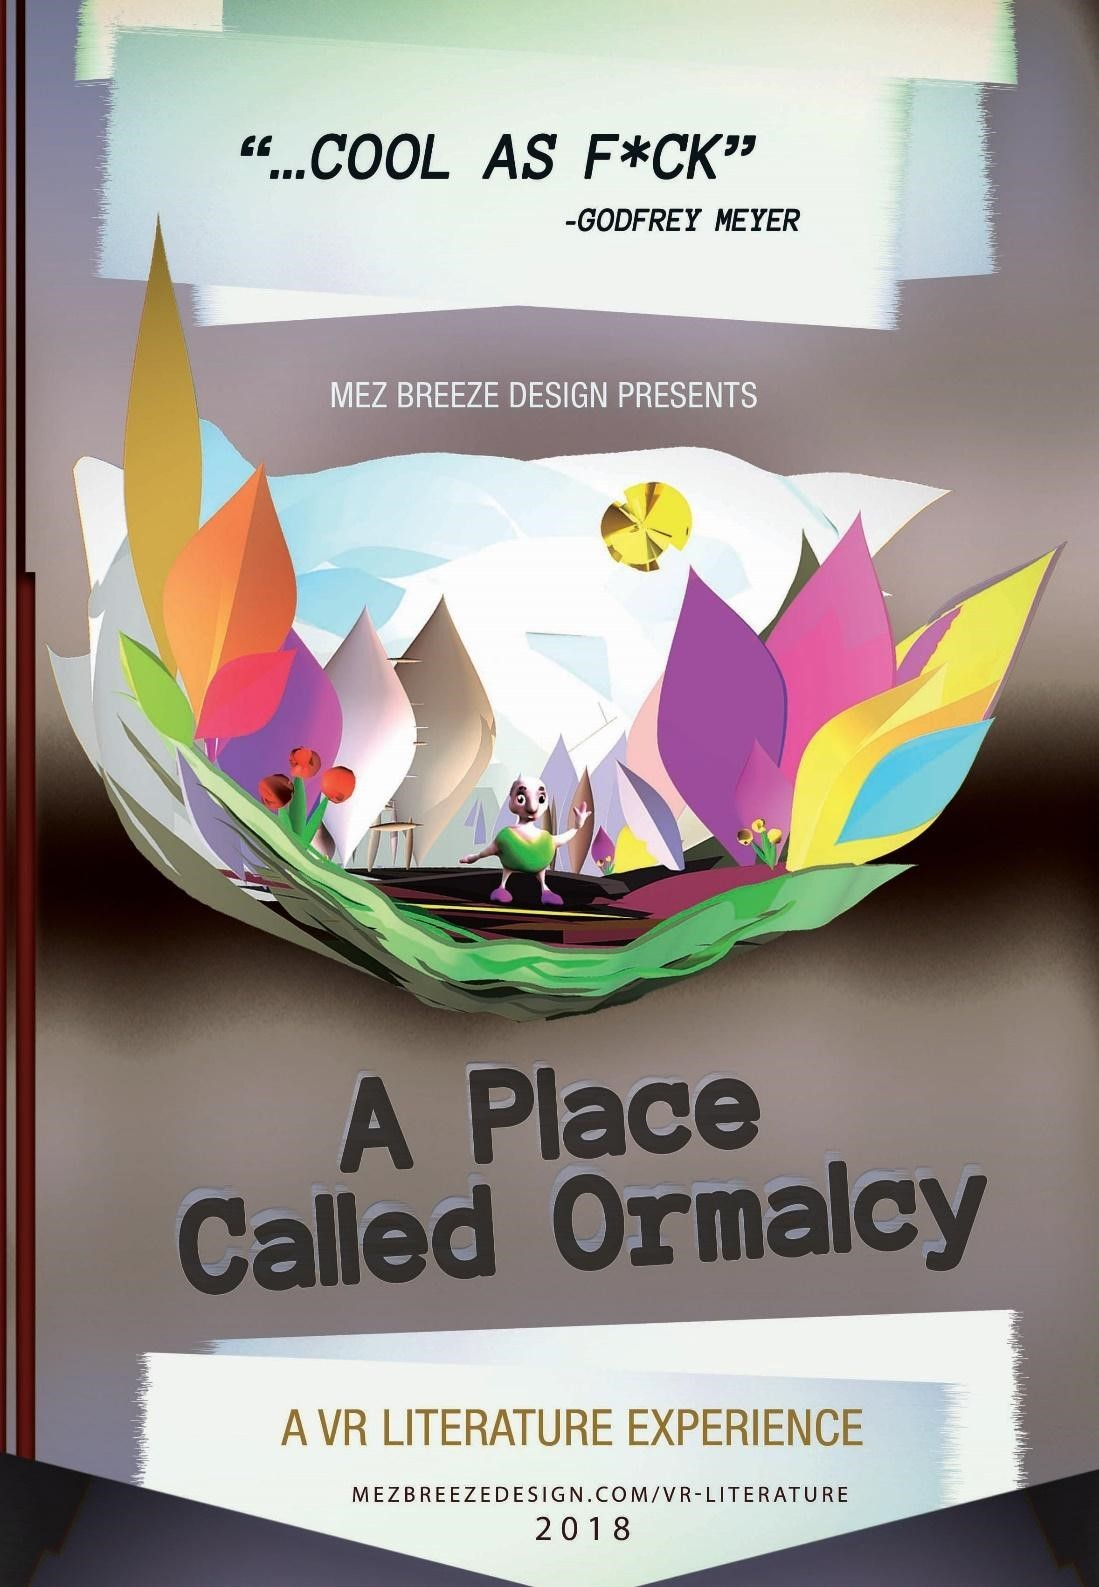 A Place Called Ormalcy by Mez Breeze